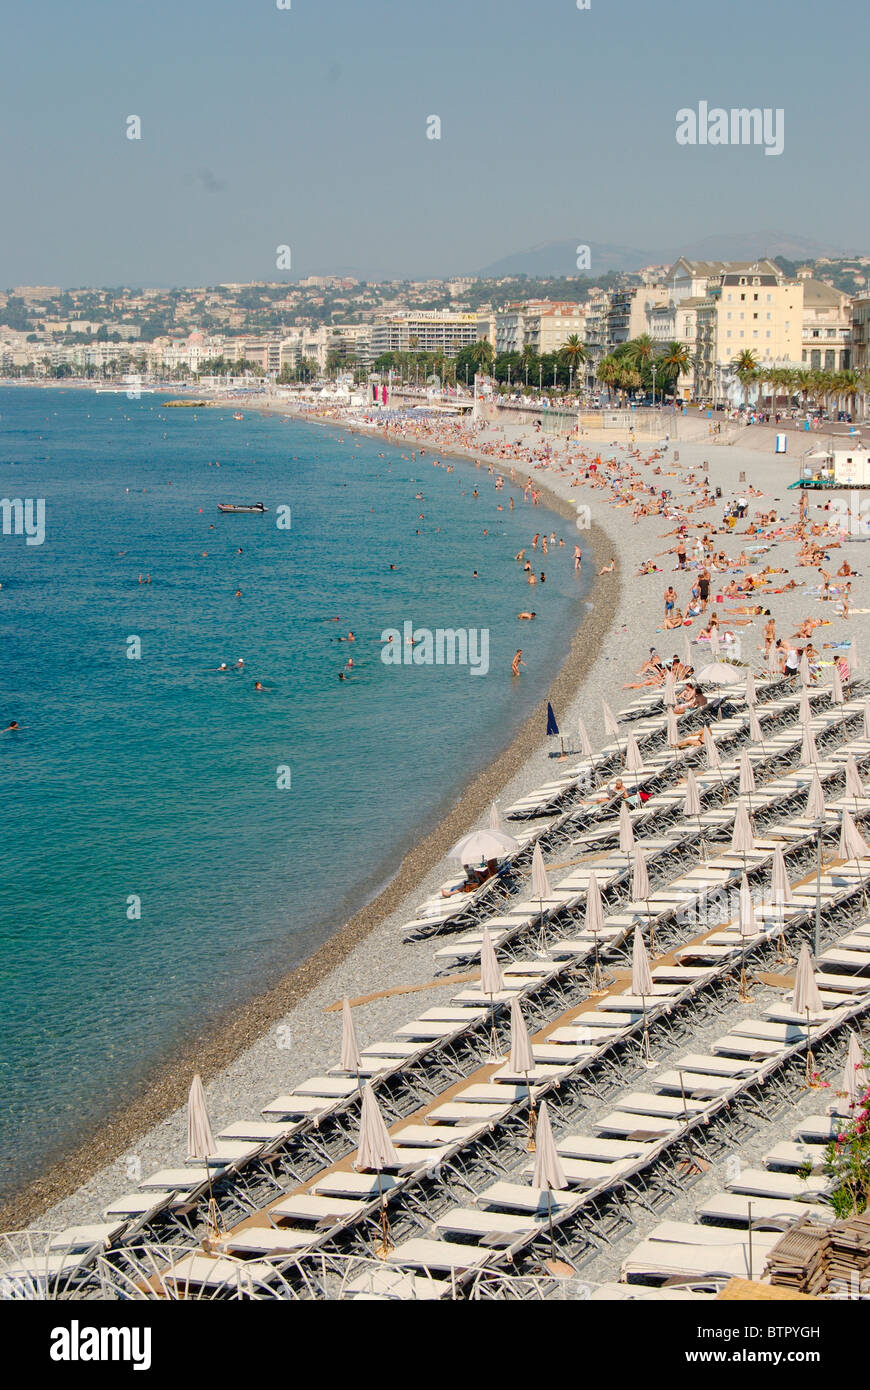 France, Nice, Promenade des Anglais, Large number of sun loungers and people at beach and city in background - Stock Image